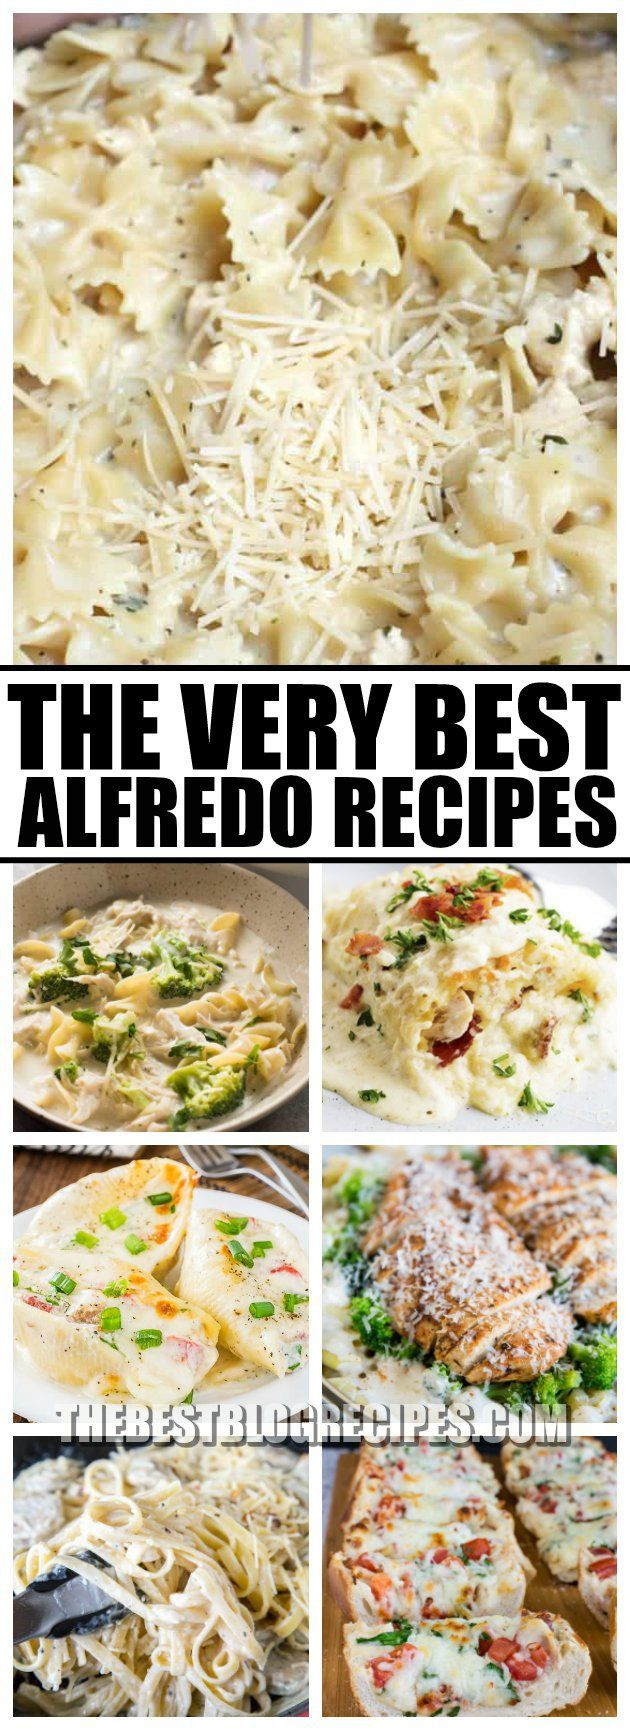 For easy, delicious creamy dinners, you need The Best Alfredo Recipes! These Alfredo dishes have to die for flavor and are incredibly easy to make. We know they will become your family's new favorites!